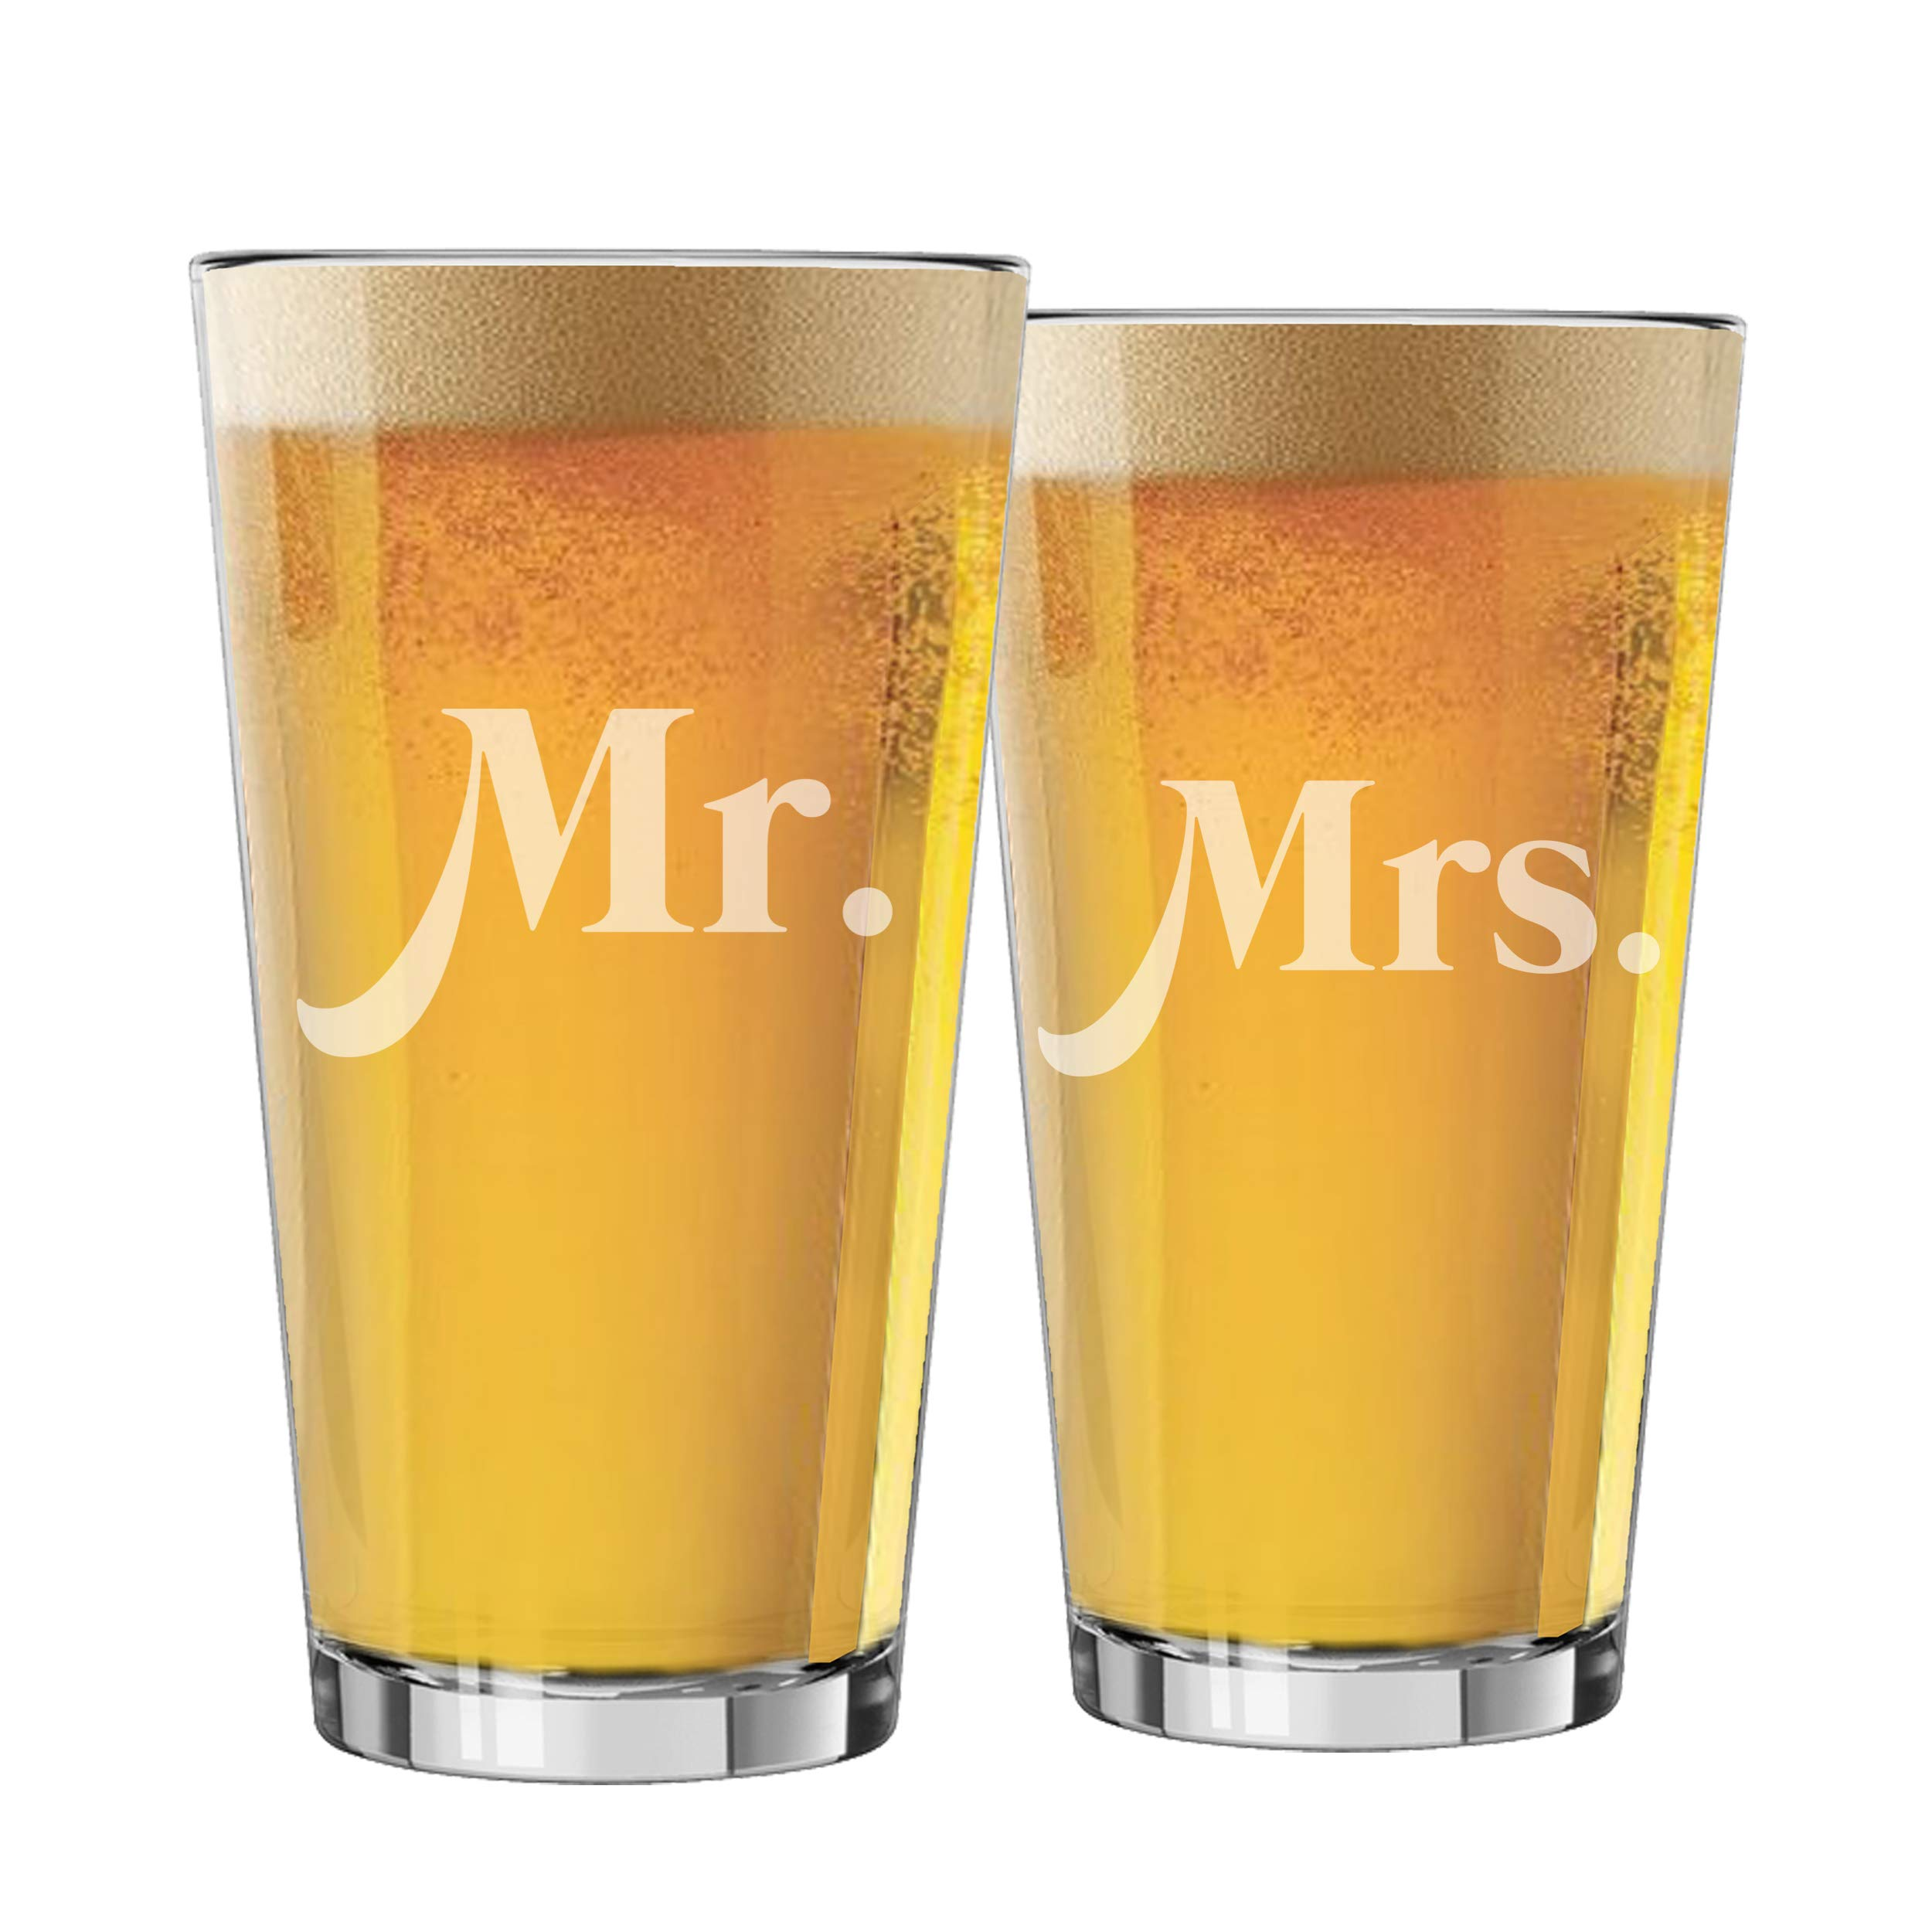 My Personal Memories Mr, Mrs, His, and Hers Beer Pint Glasses Gift Set of 2 for Engagement, Wedding, Anniversary, and Couples (Mr. and Mrs. Block - 16oz)